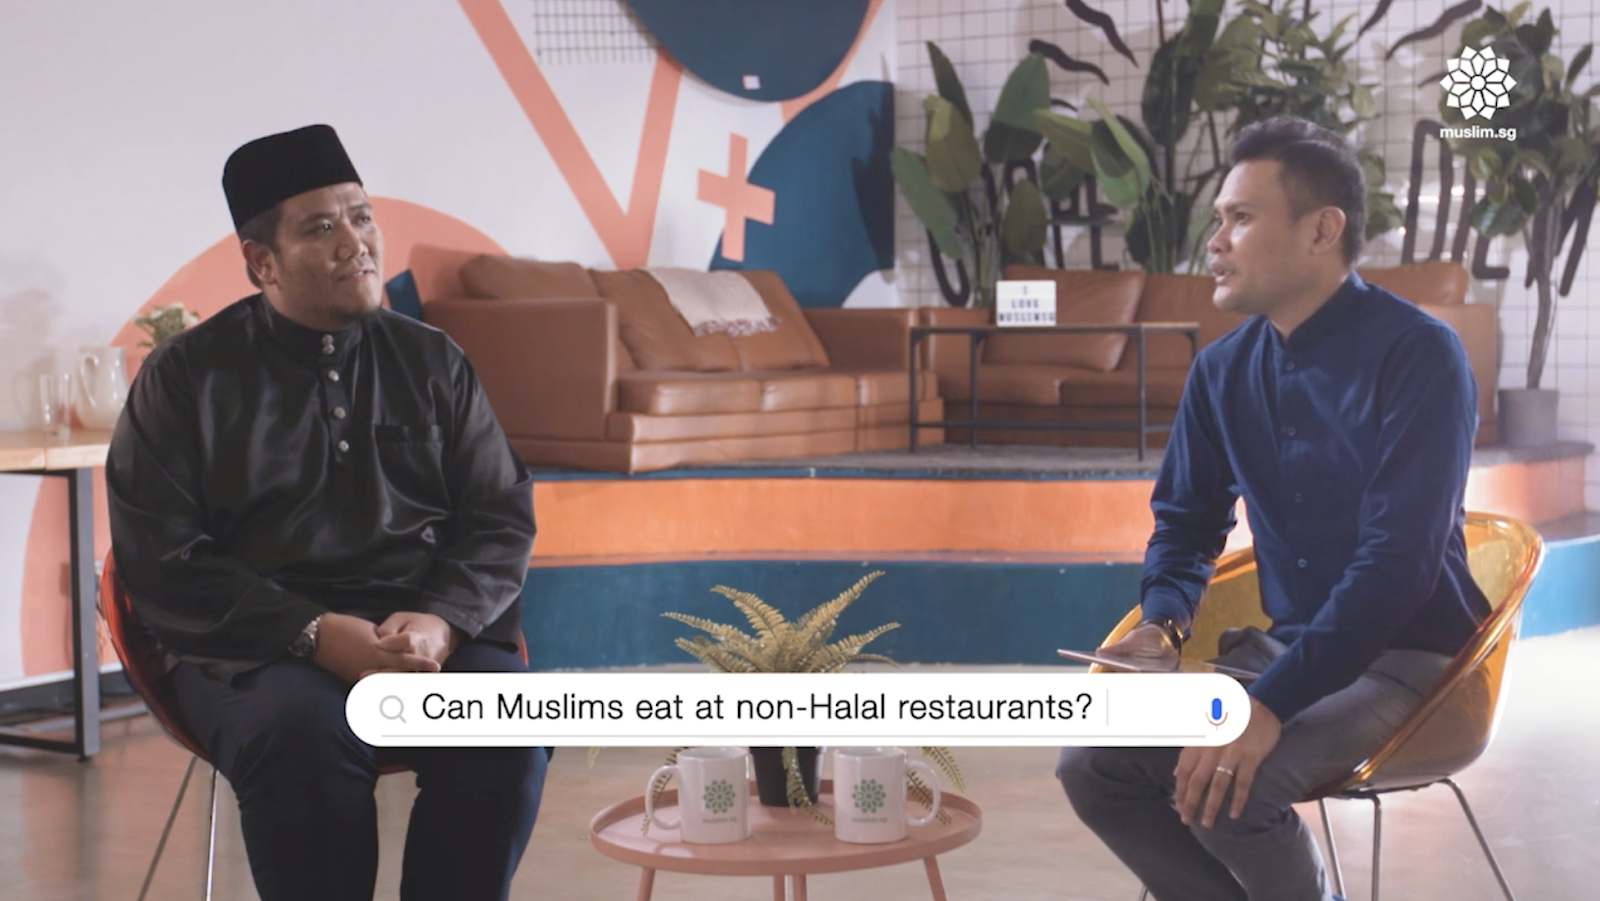 Can Muslims eat at restaurants that serve pork